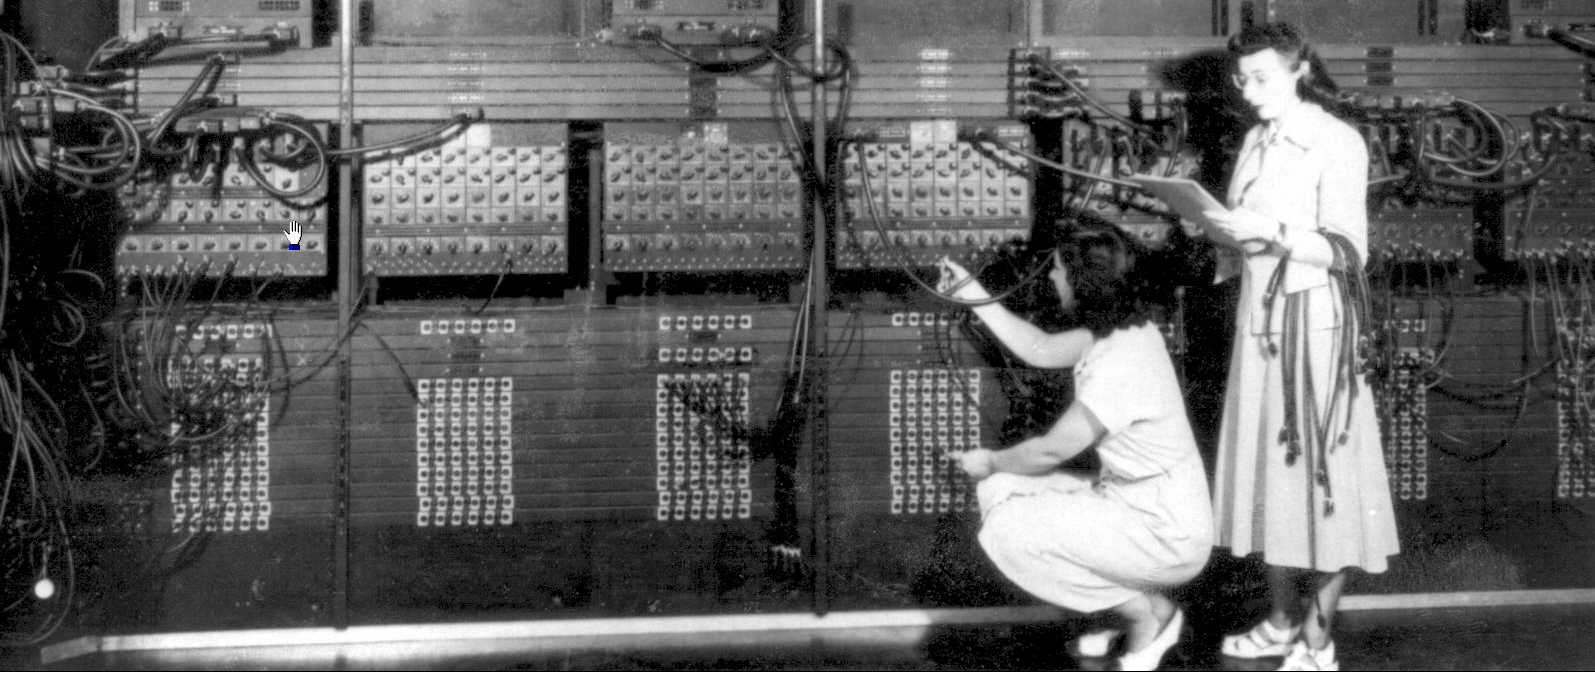 Programming the ENIAC